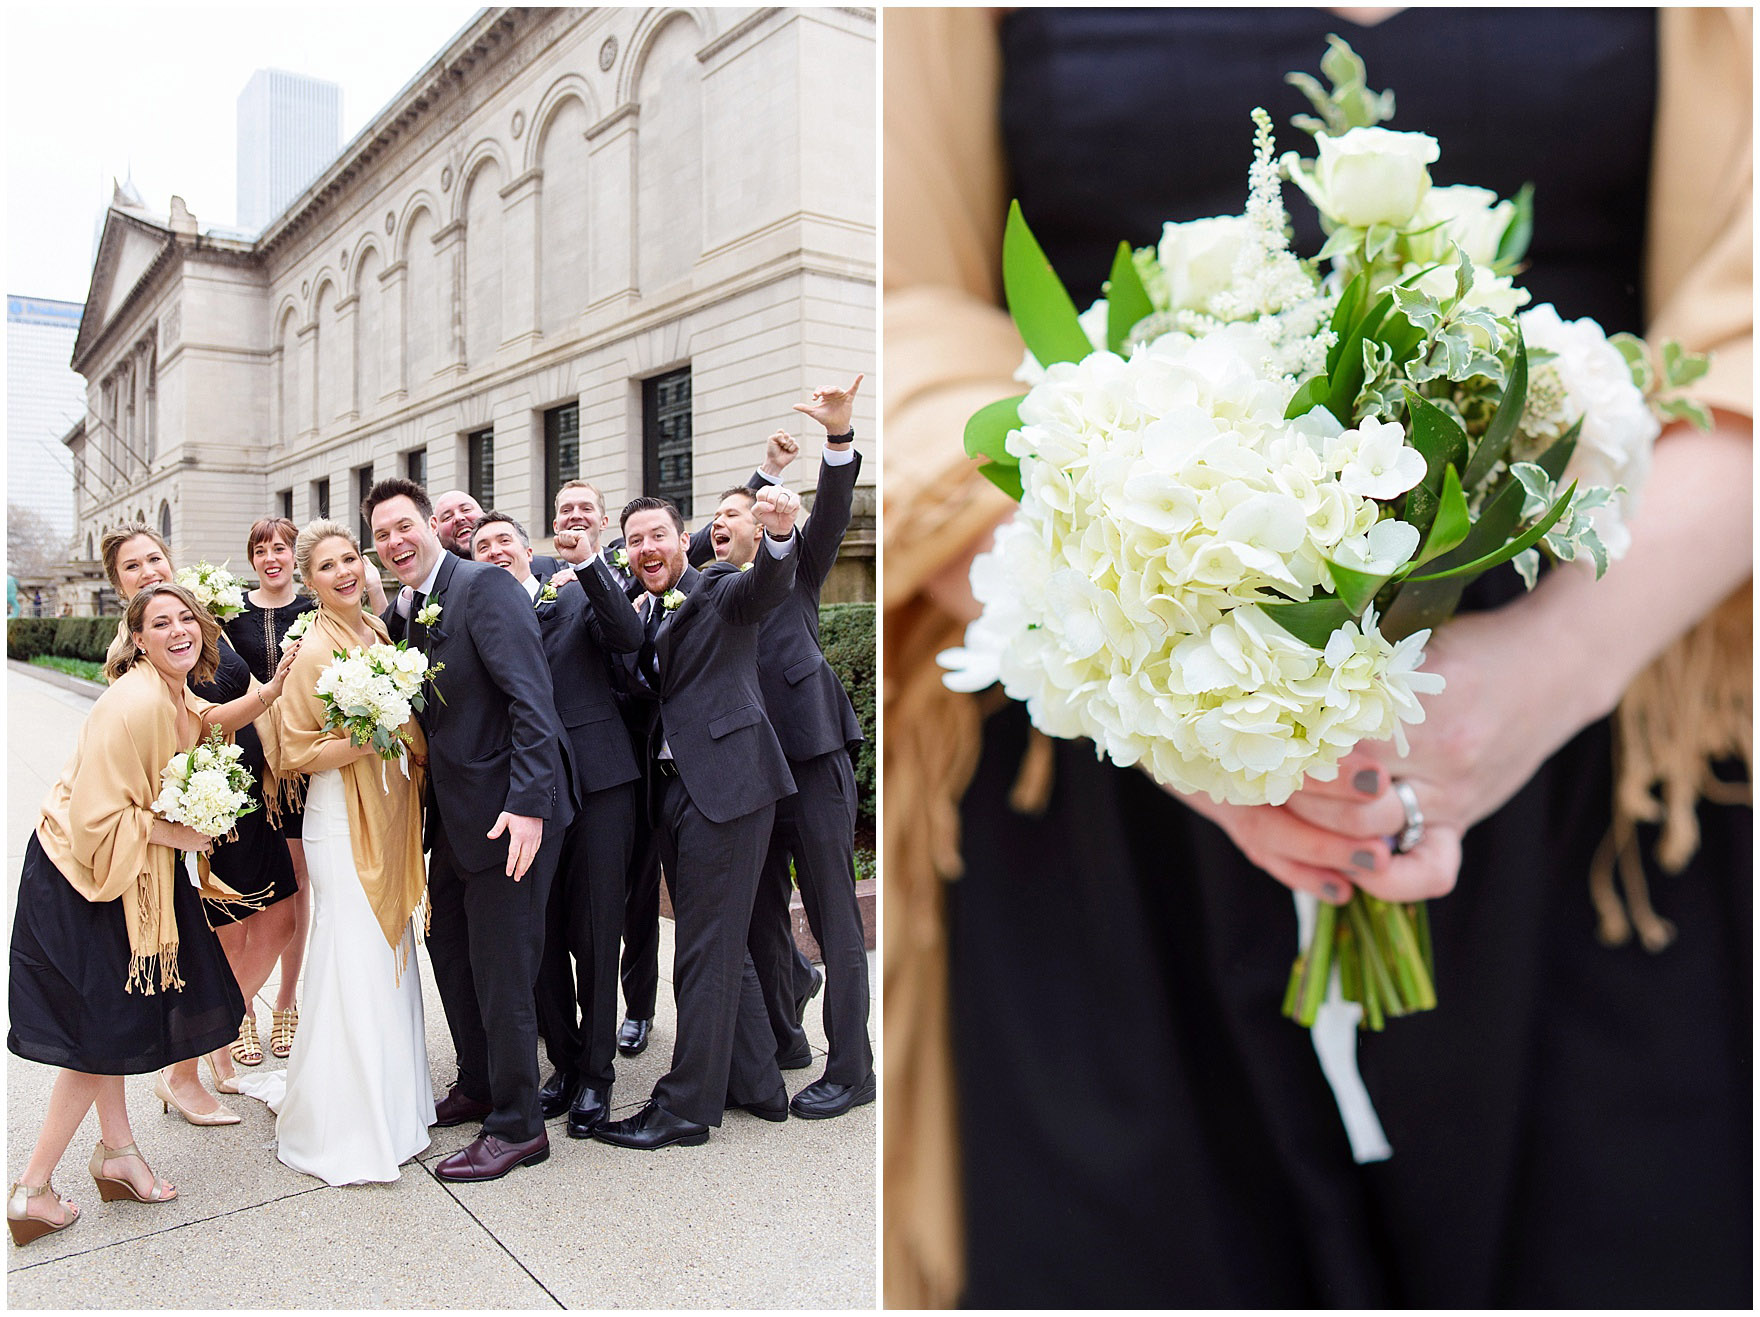 A bridal party poses for wedding photographs in front of the Art Institute of Chicago prior to an Ovation Chicago wedding.